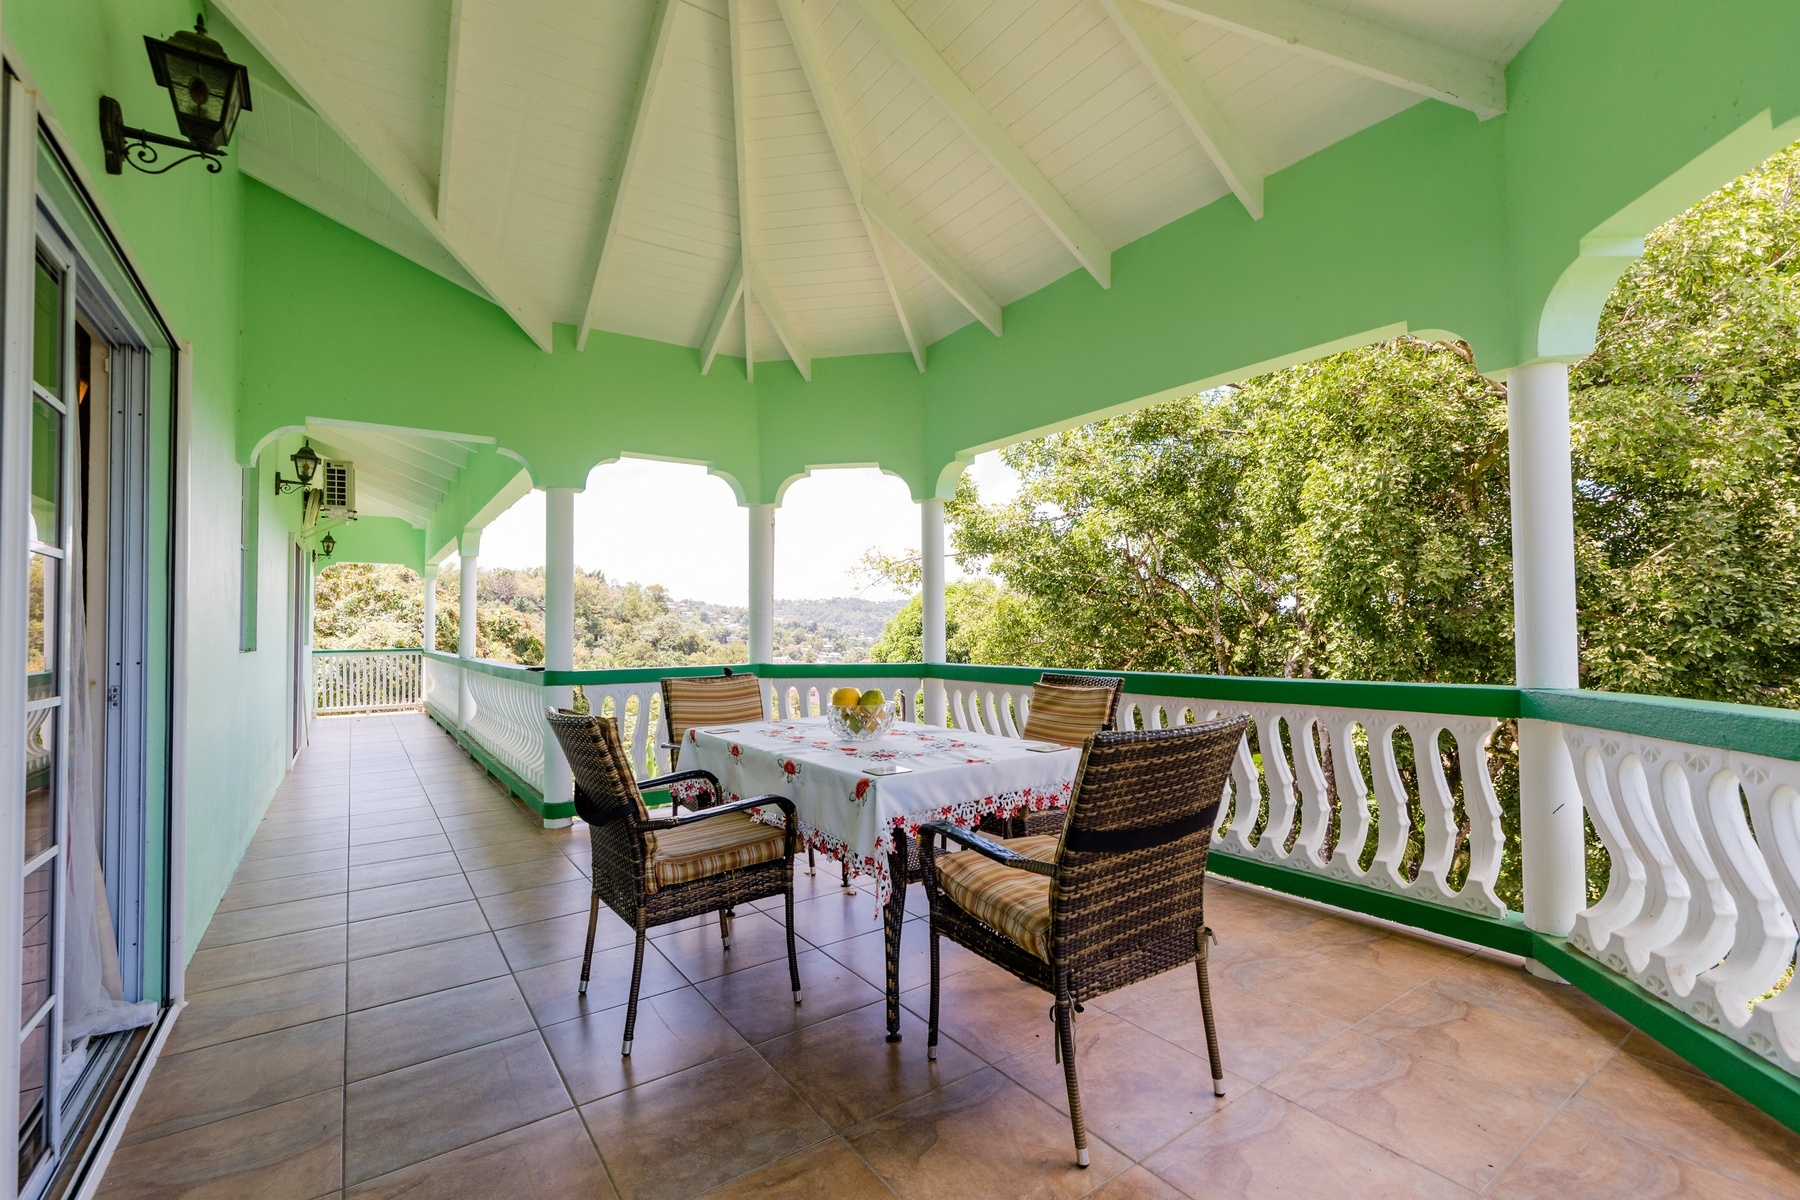 Single Family Homes for Sale at 2 Bedroom Private Bungalow with Pool Other Castries, Castries St. Lucia